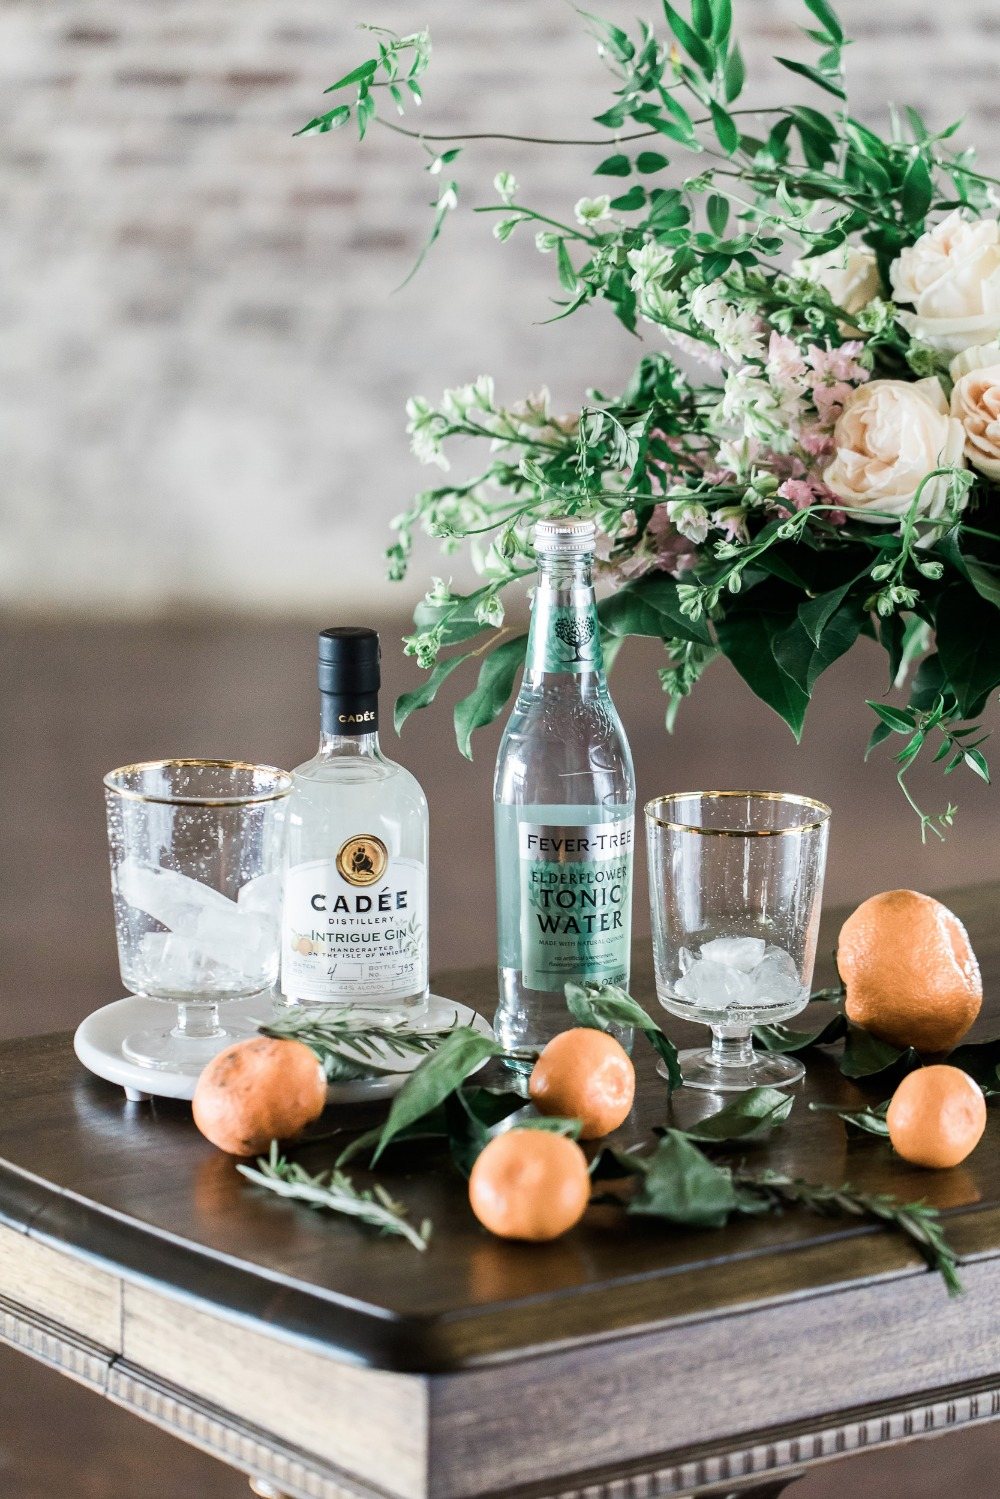 local gin and tonic cocktail recipe